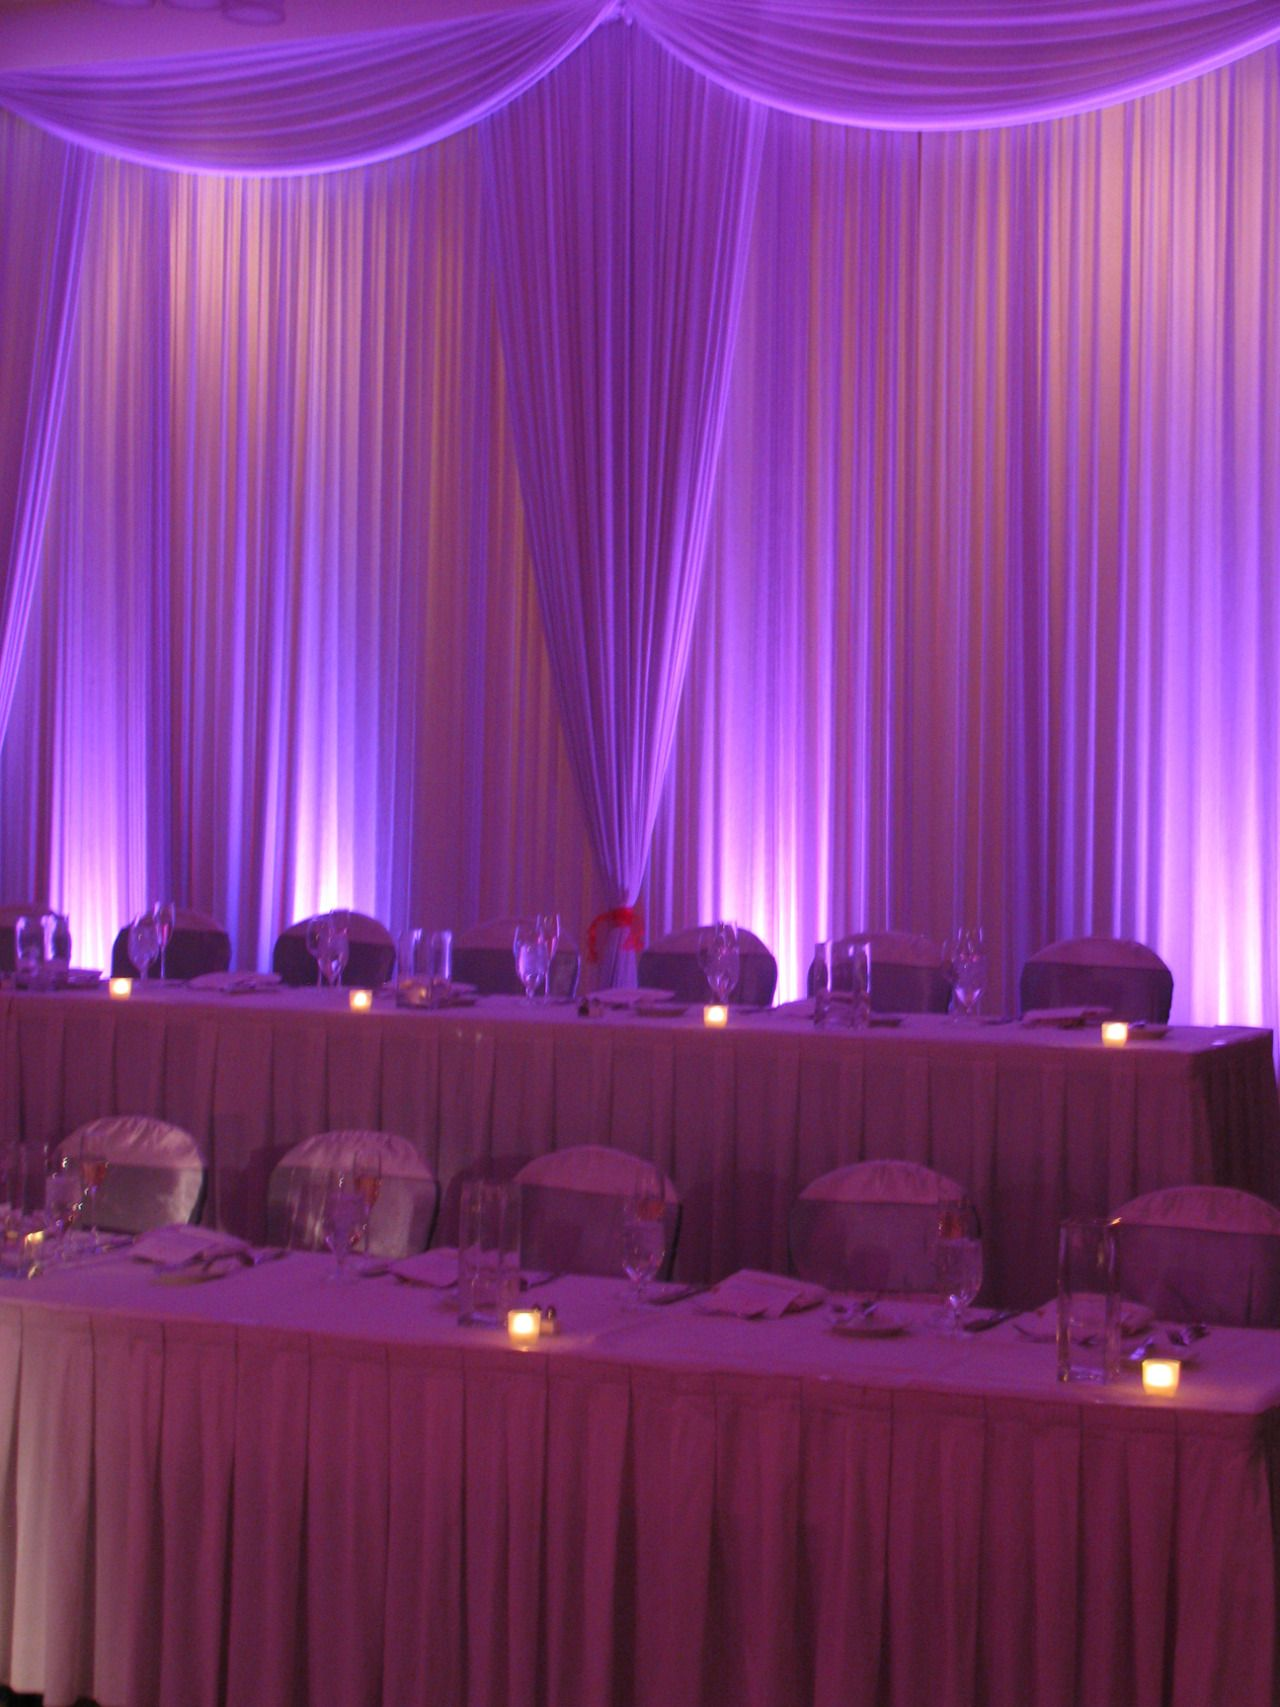 Gorgeous head table backdrop with curtains and uplighting. #uplighting #wedding #headtable #curtain | My dream wedding | Pinterest